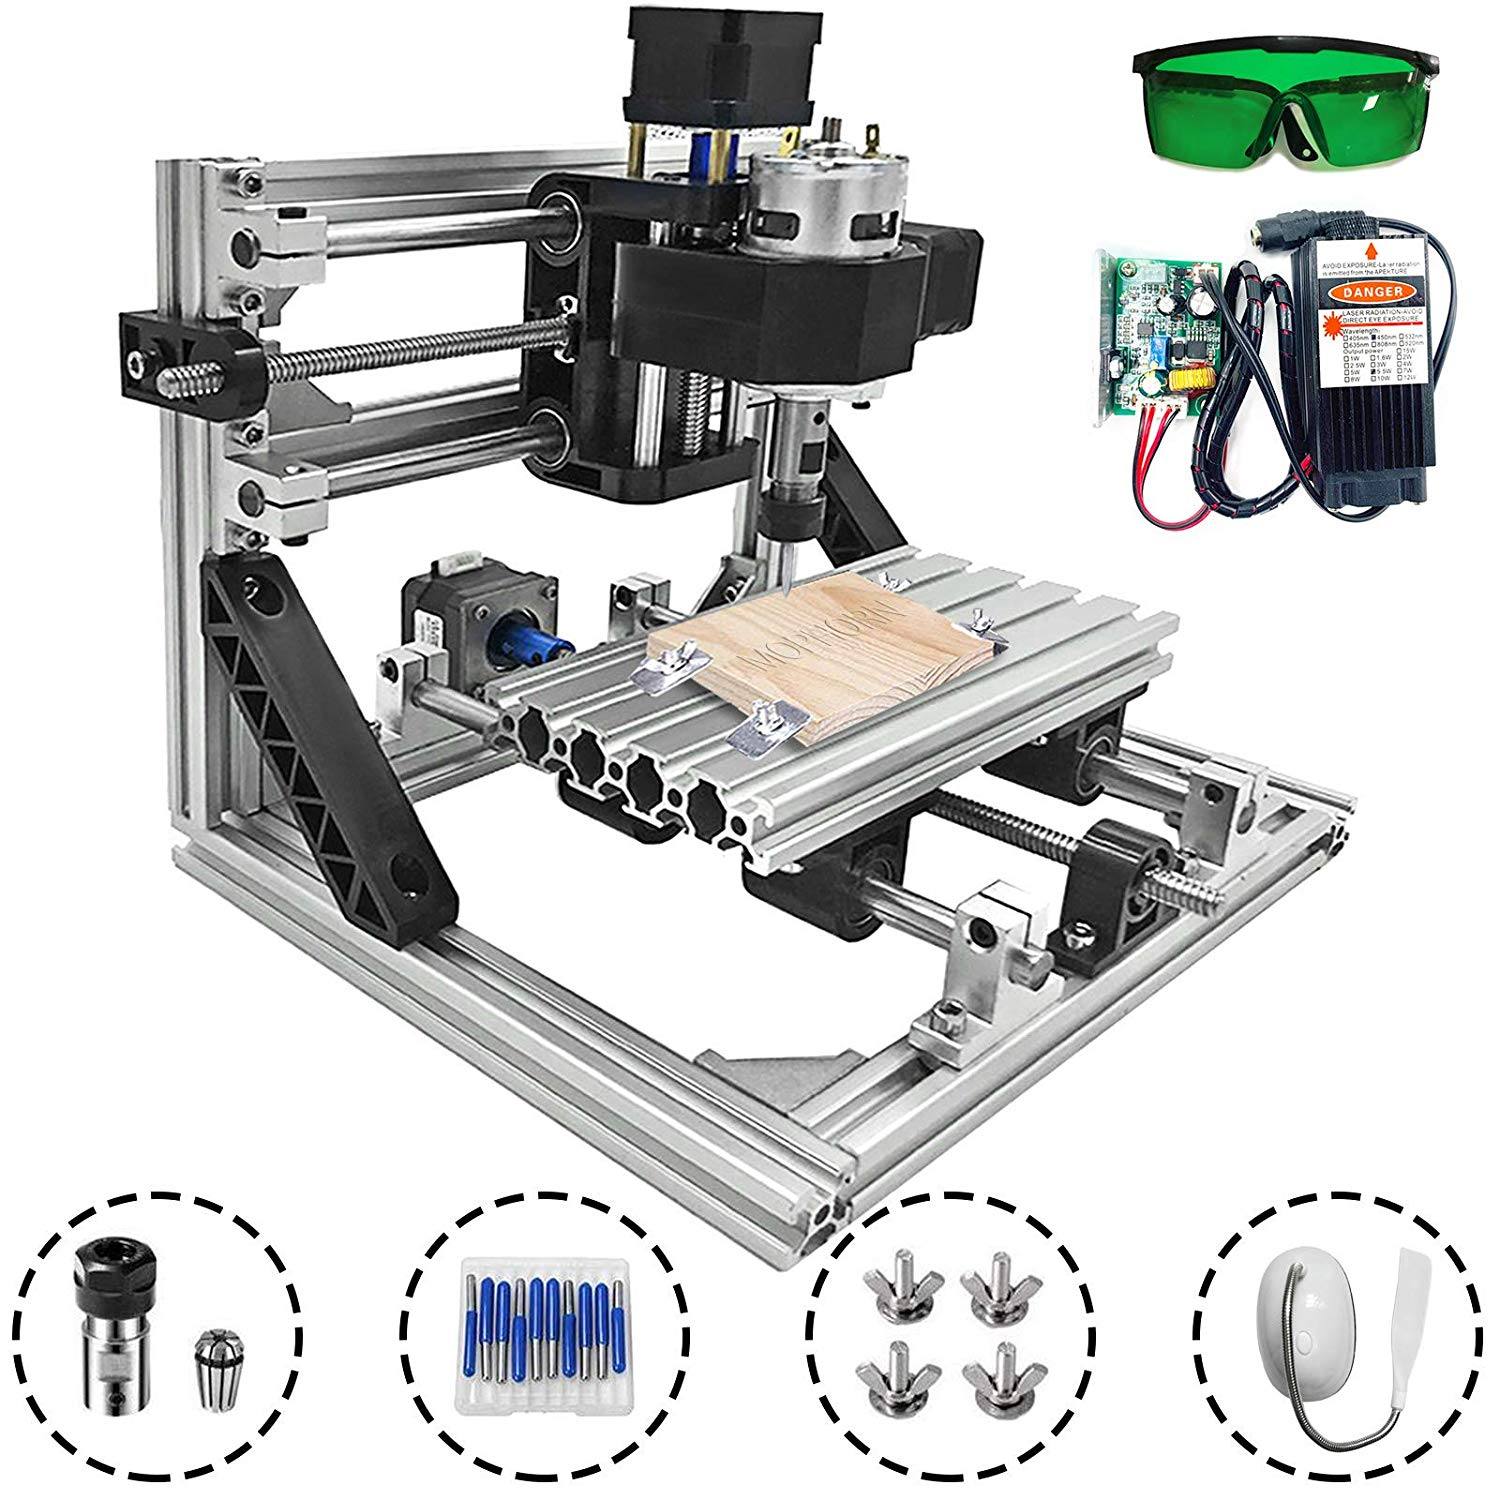 Mophorn Cnc Machine 1610 Grbl Control Cnc Router Kit 3